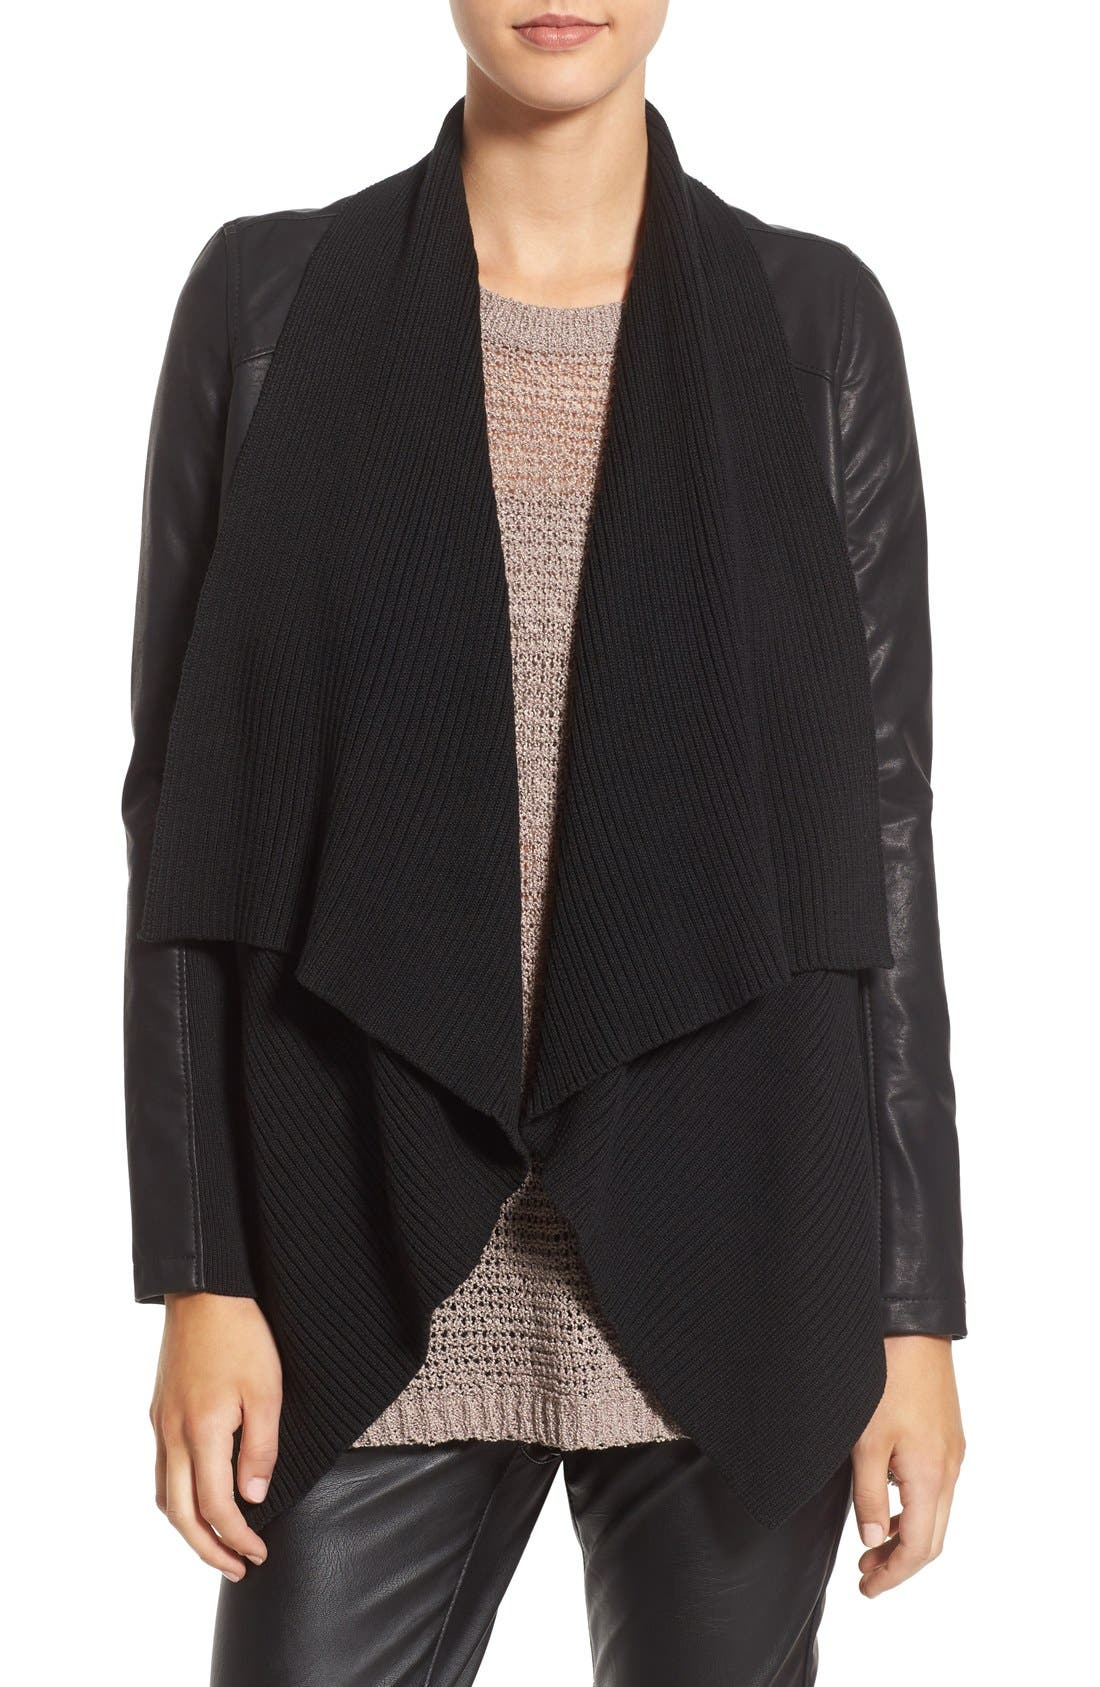 BLANKNYC, All or Nothing Faux Leather Jacket, Main thumbnail 1, color, 001